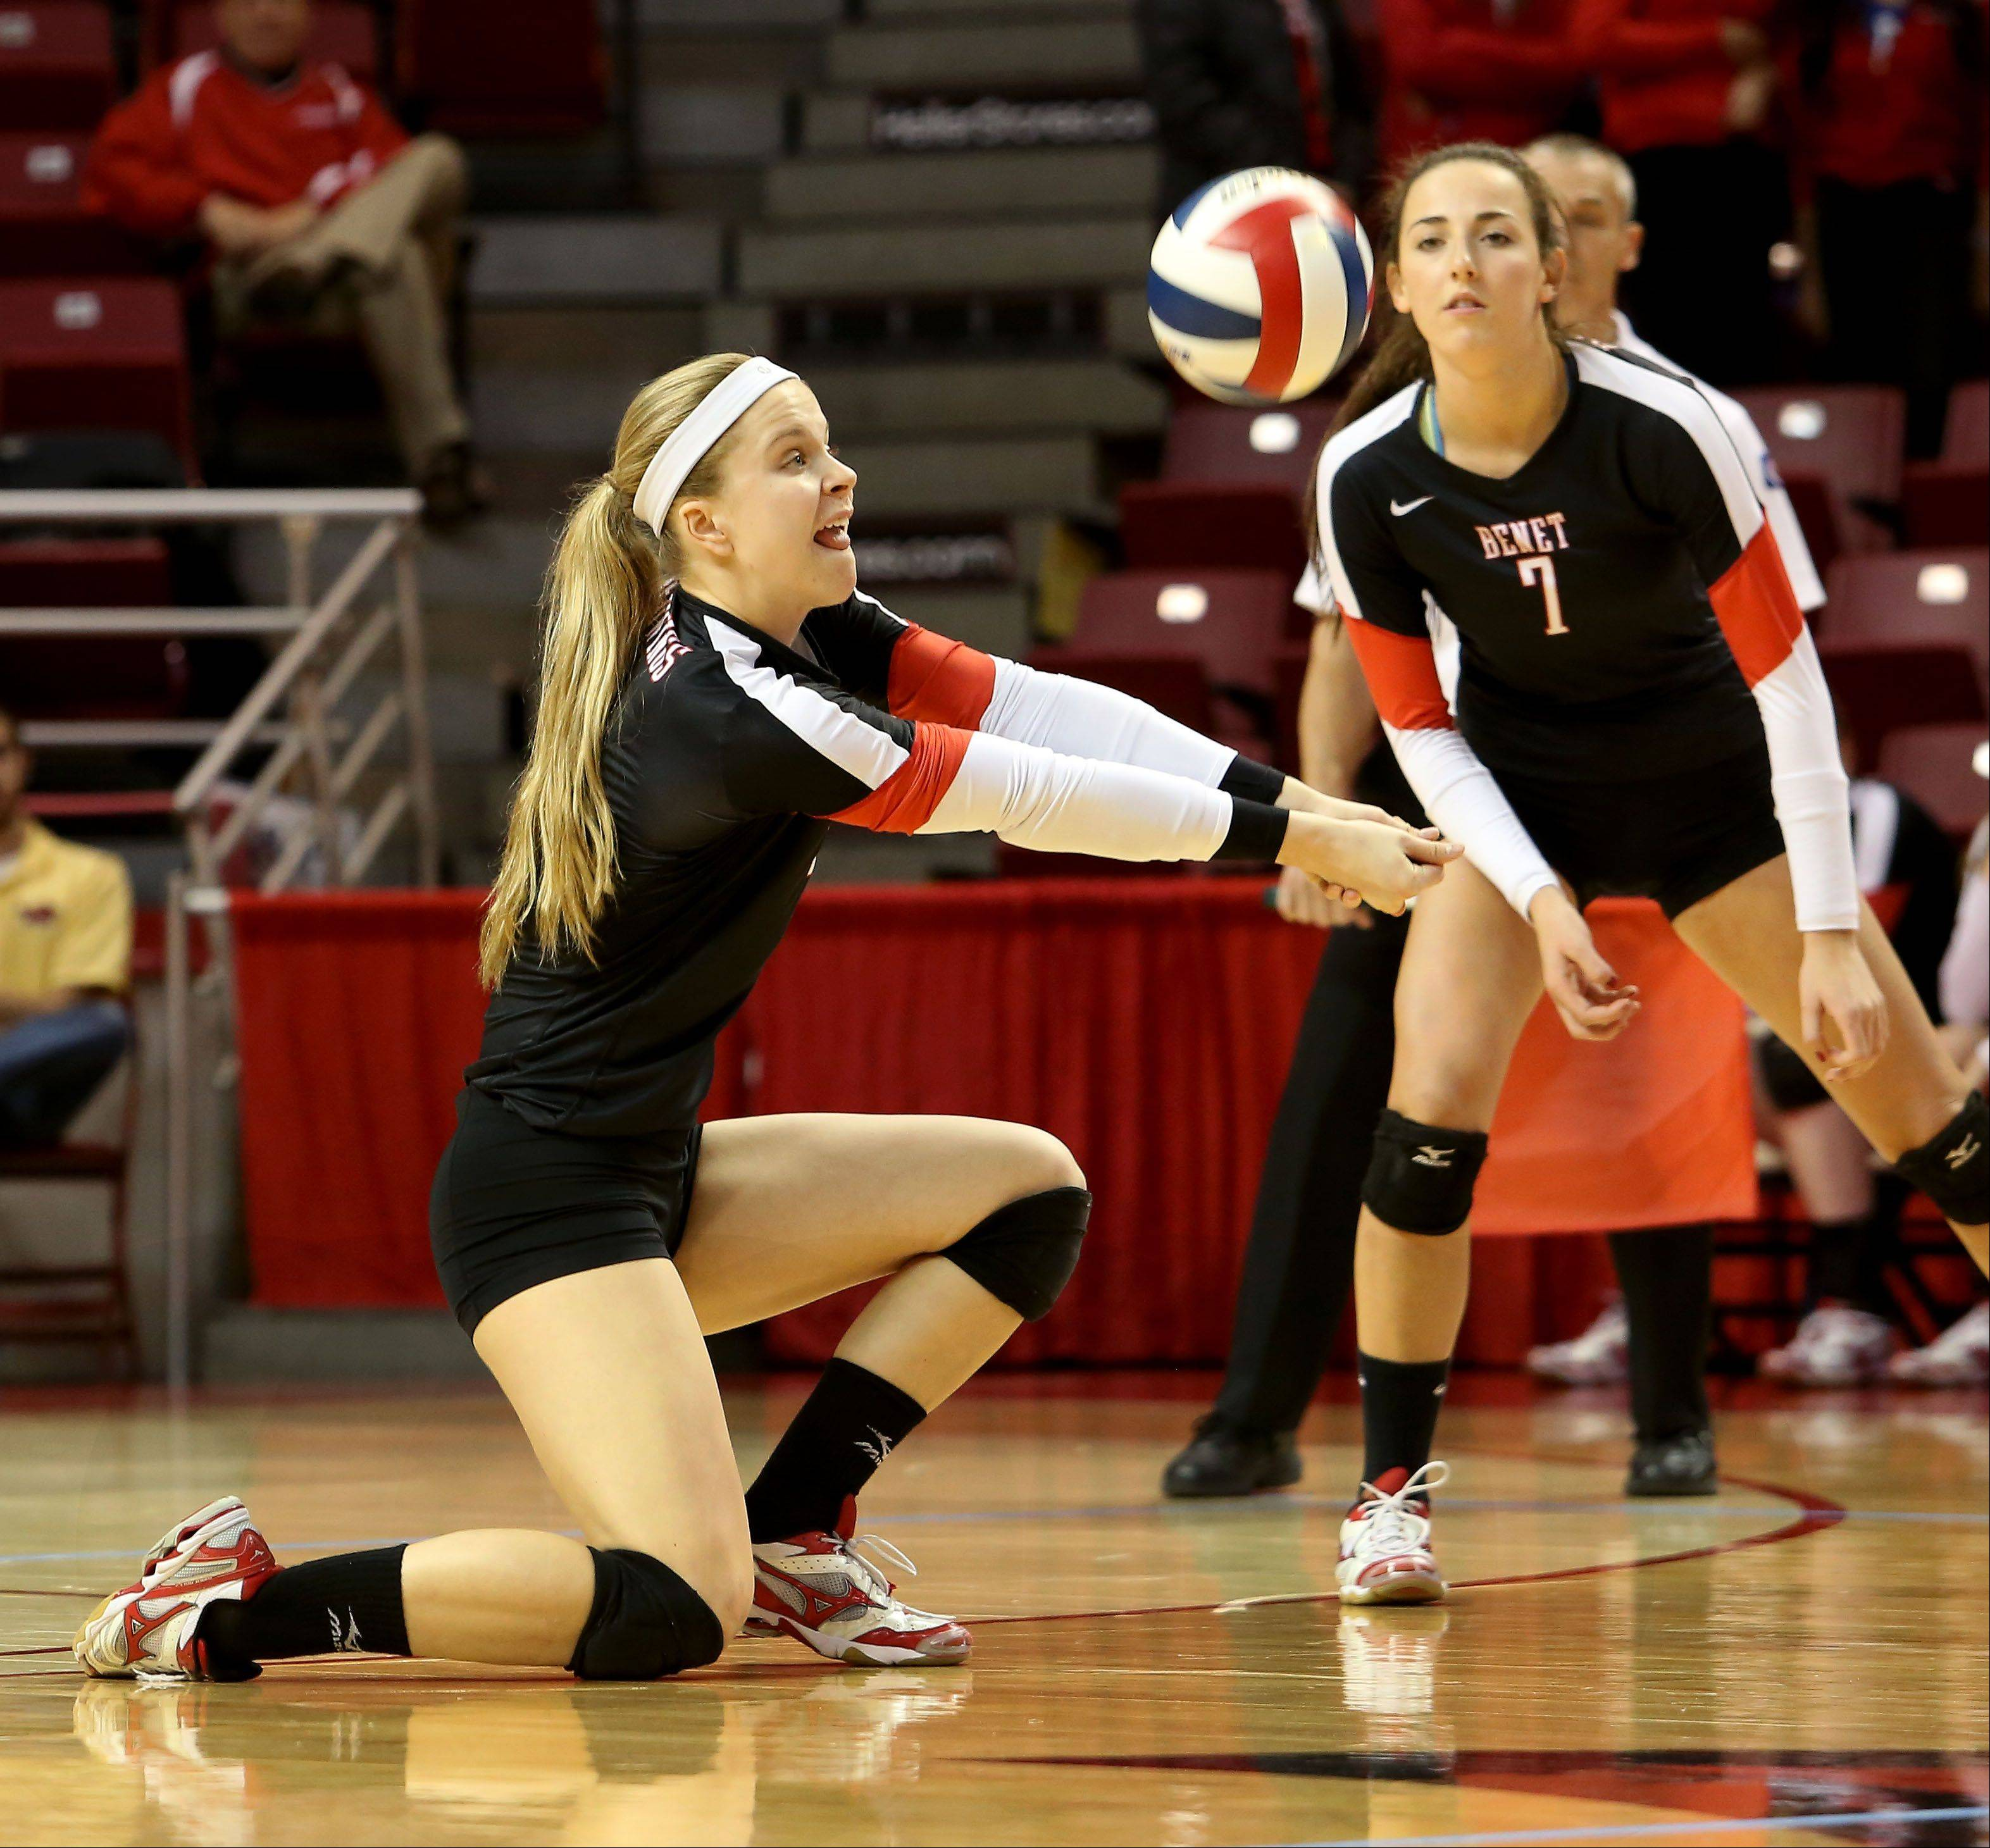 Tiffany Clark of Benet returns a serve from Crystal Lake South in Class 4A state girls volleyball action on Friday in Normal.